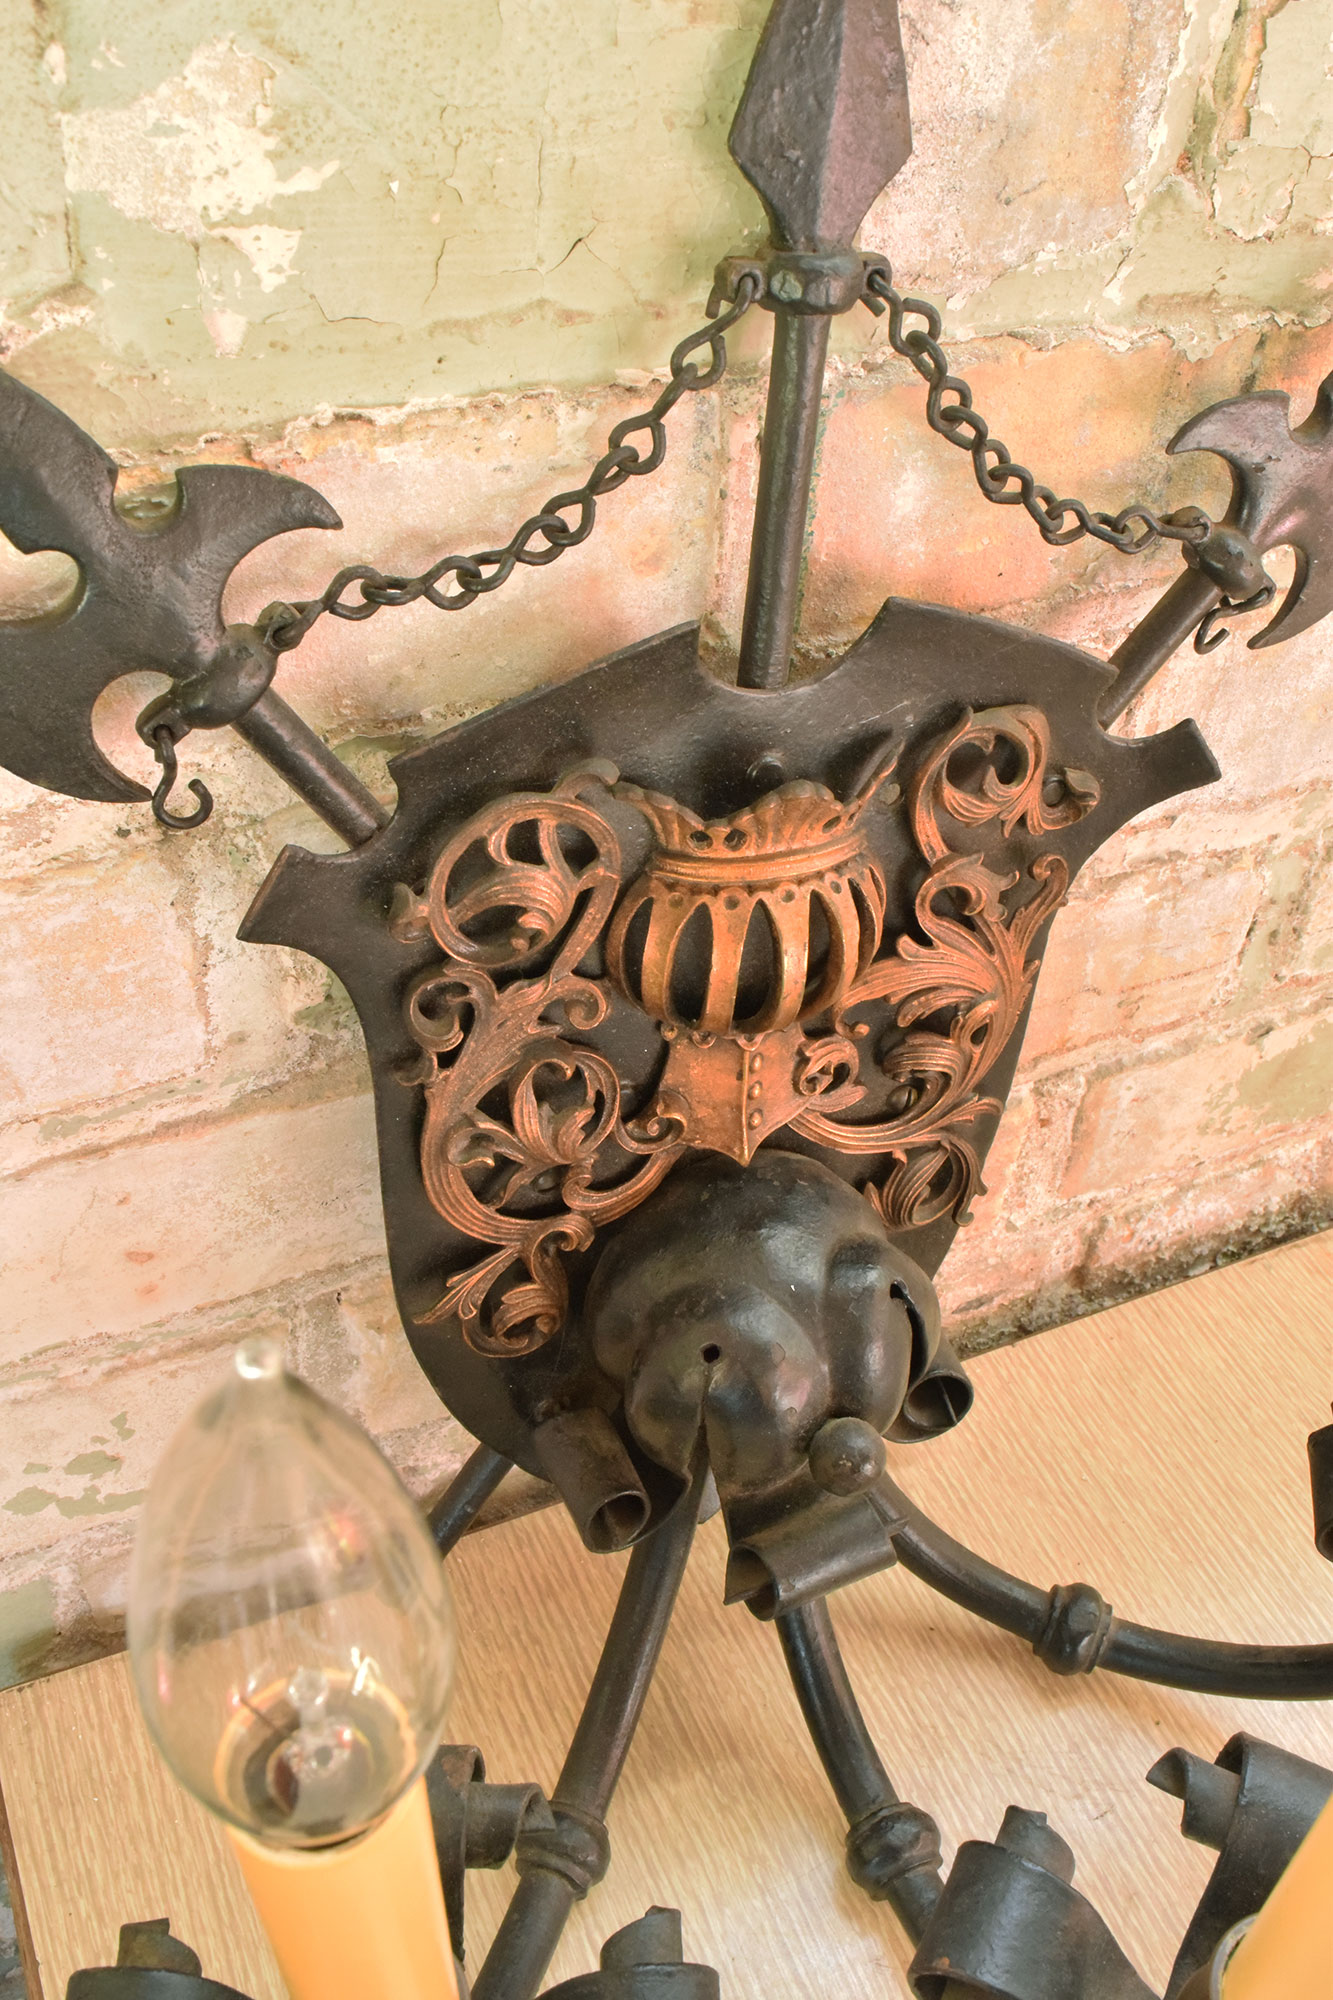 46944-iron-3-candle-sconce-center.jpg